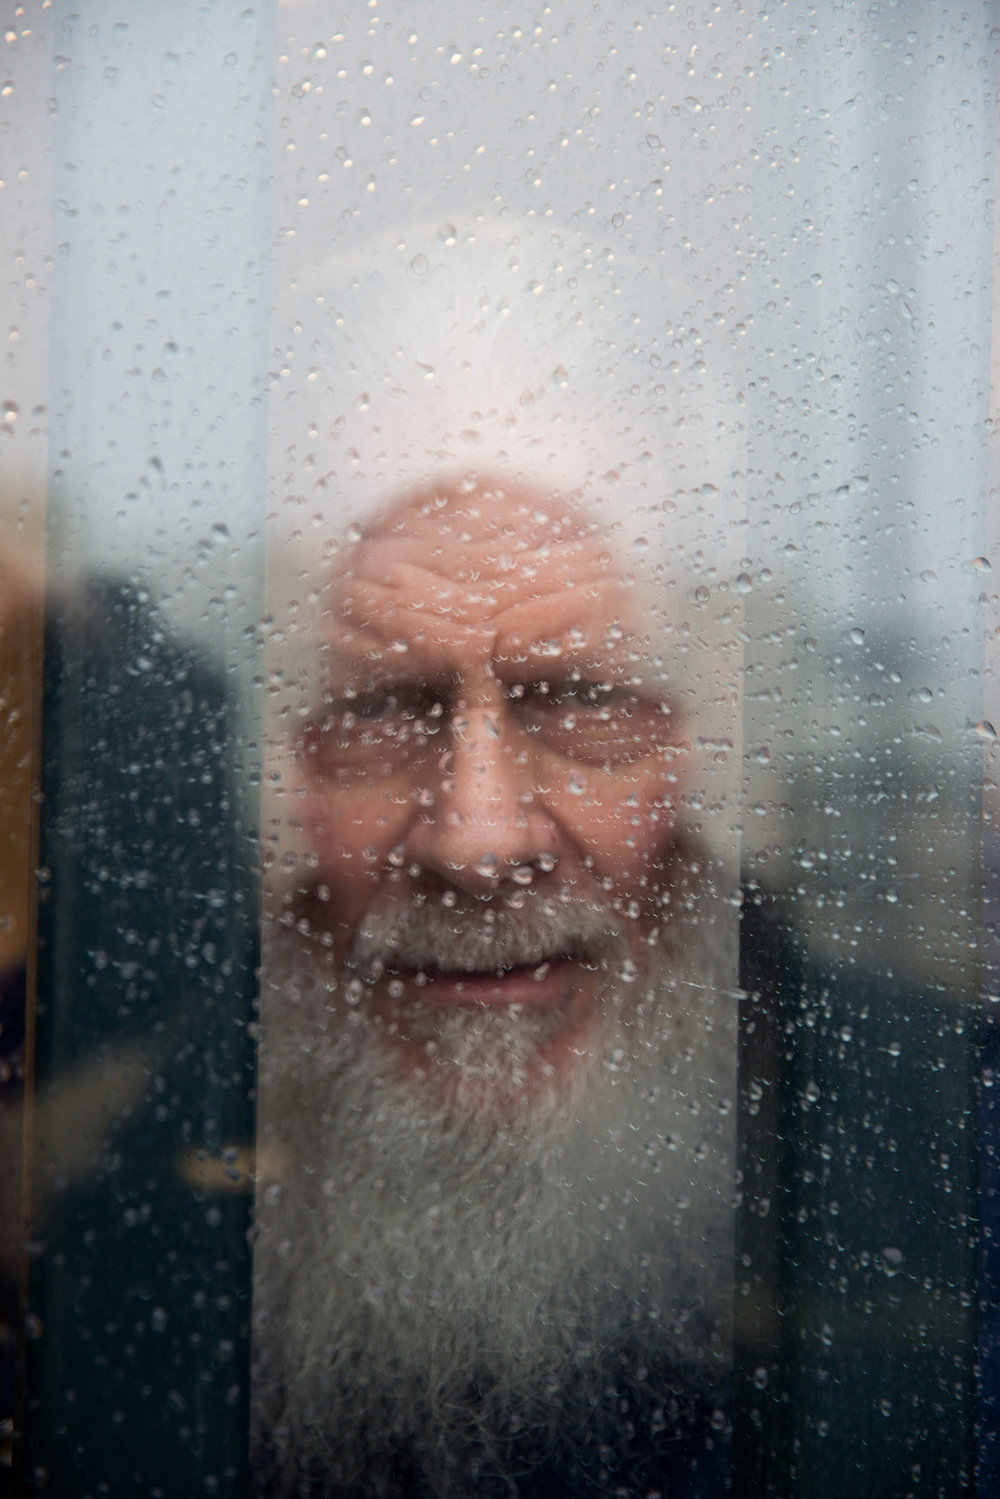 Please see the slideshow and article on   National Geographic  .   Robert, 70 years old, looks out his cell window. He has spent nearly 30 years in prison after being convicted of murder. Four times a day, he travels to the prison medical unit for treatment. In his free time, Robert also mentors younger prisoners who have come in with drug addictions, something he is very passionate about.